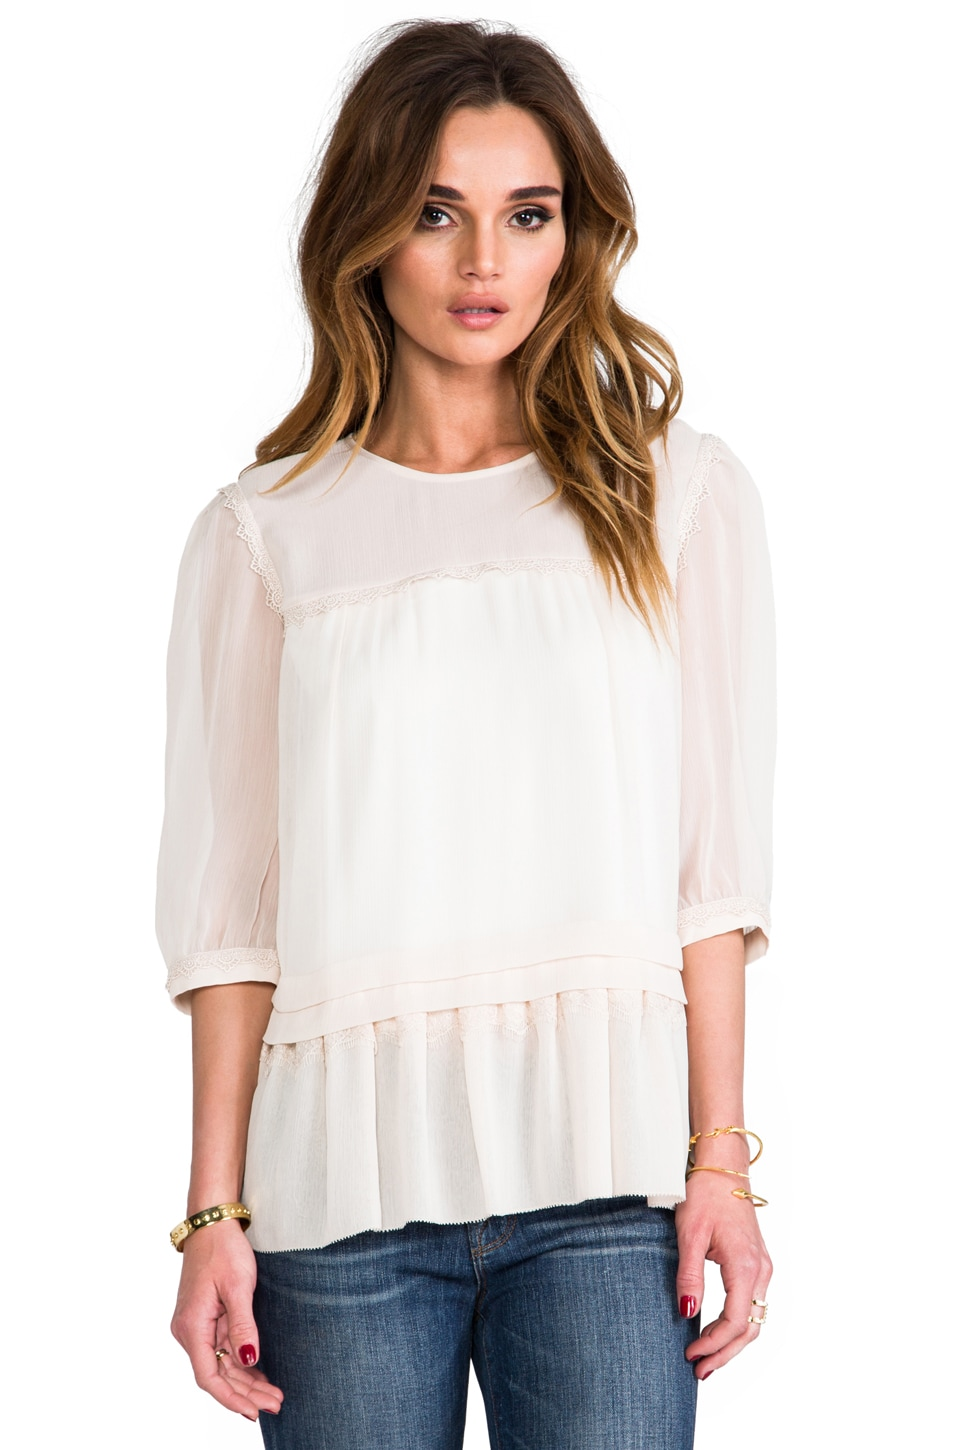 Alice by Temperley Deity Top in Oyster